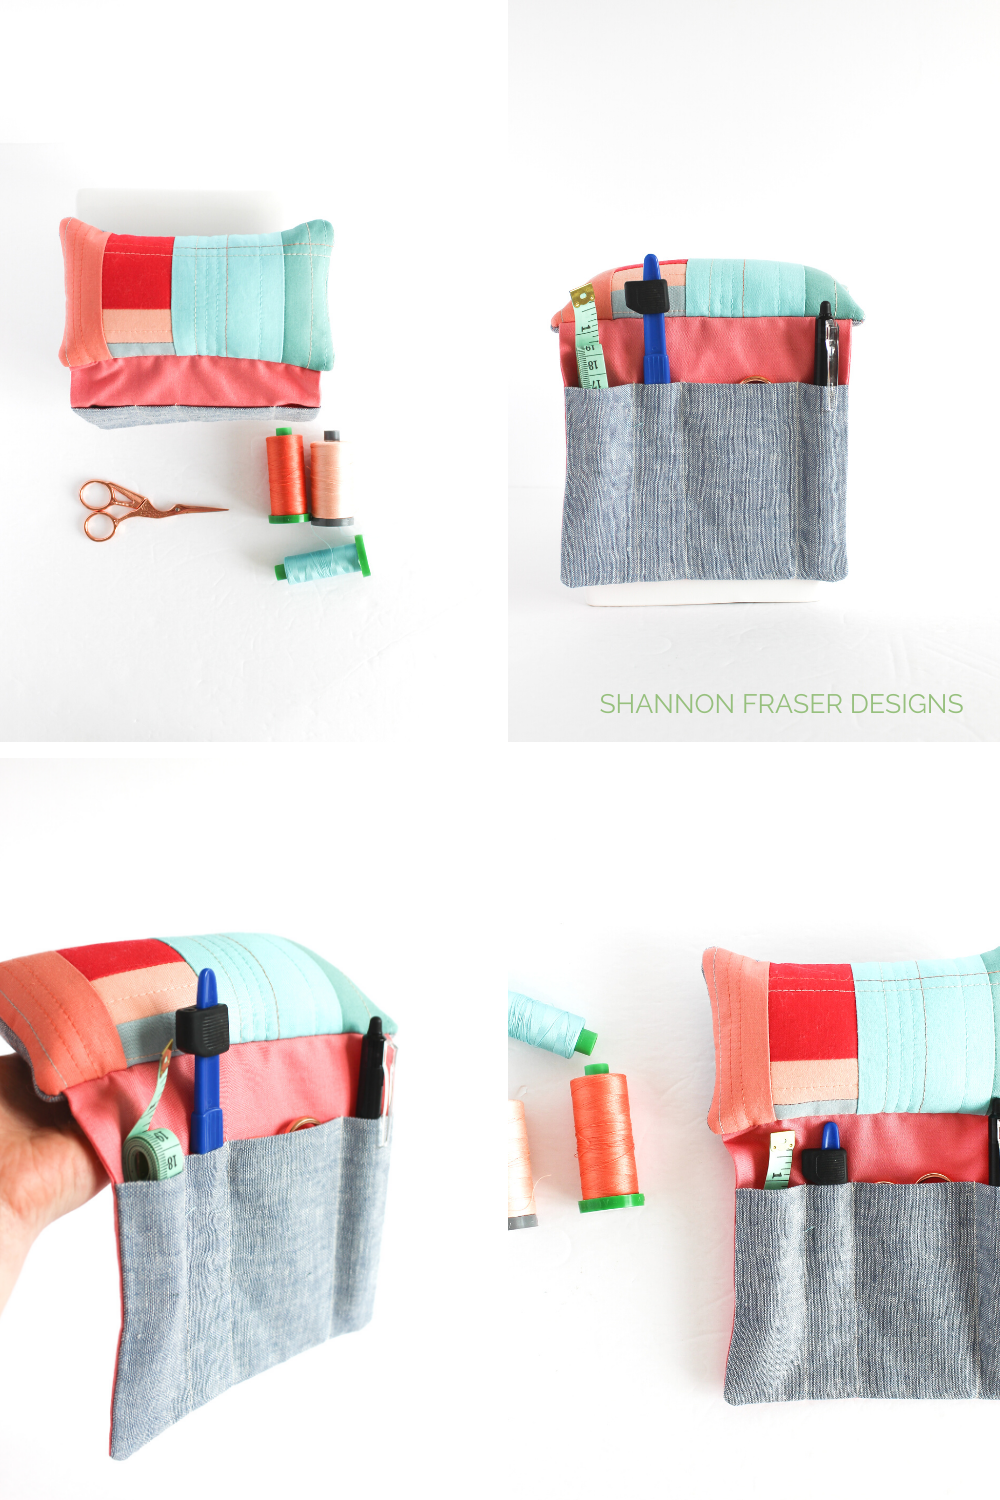 Coral, peach, turquoise and chambray linen Sit 'n Sew Pincushion | 2020 Mid-Year Goals Check-In | Shannon Fraser Designs #pincushion